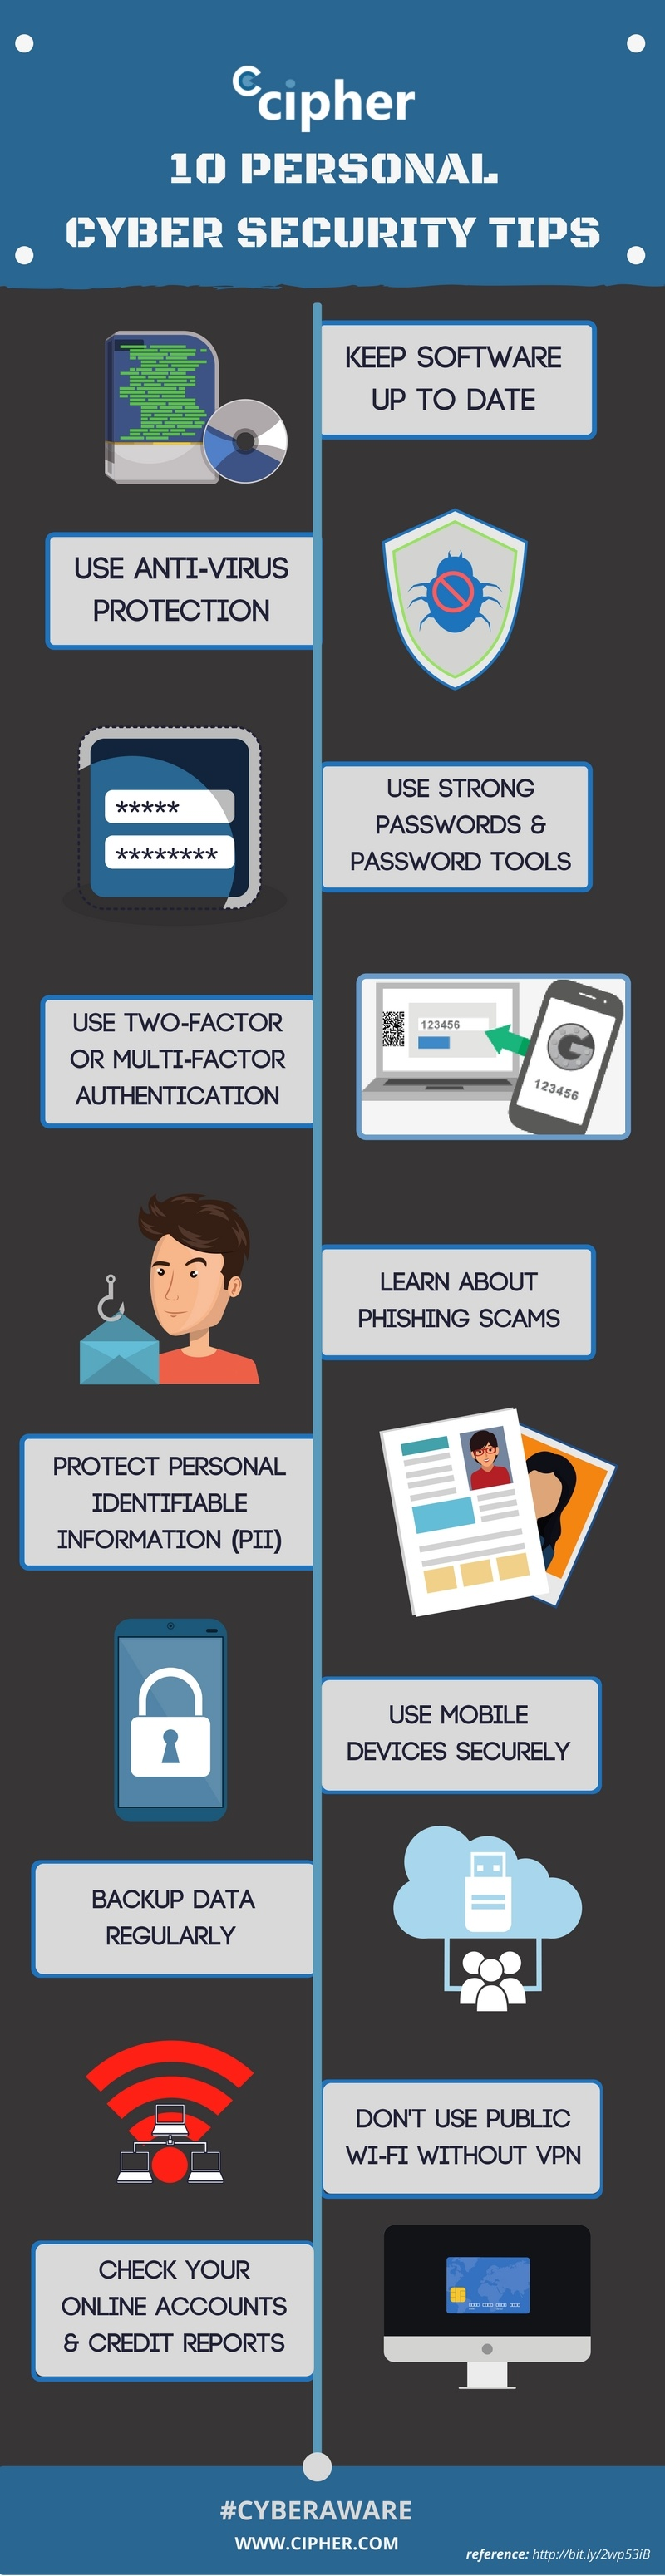 10 Personal Cyber Security Tips Infographic.jpg